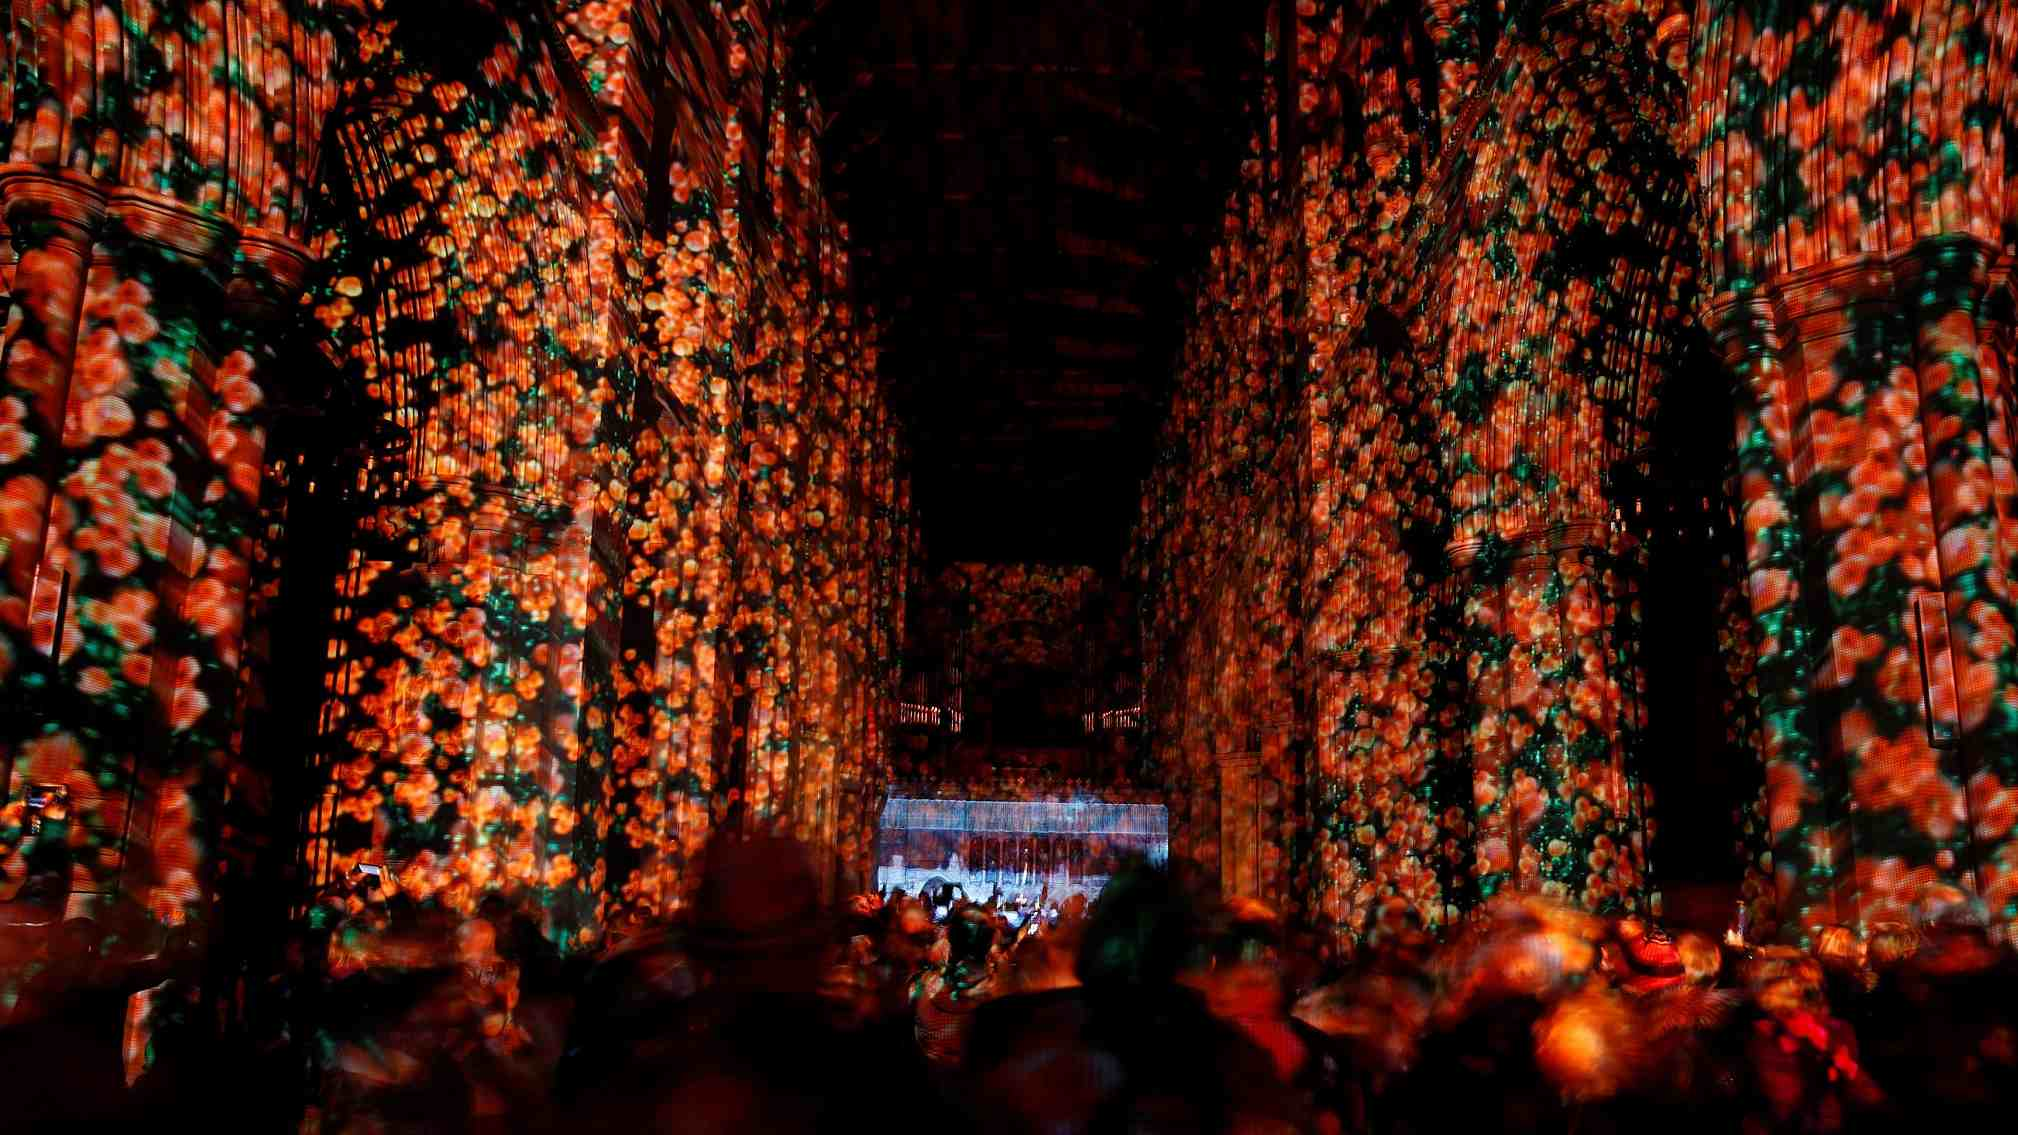 Projection of poppies at cathedral nave to commemorate the centenary of WWI